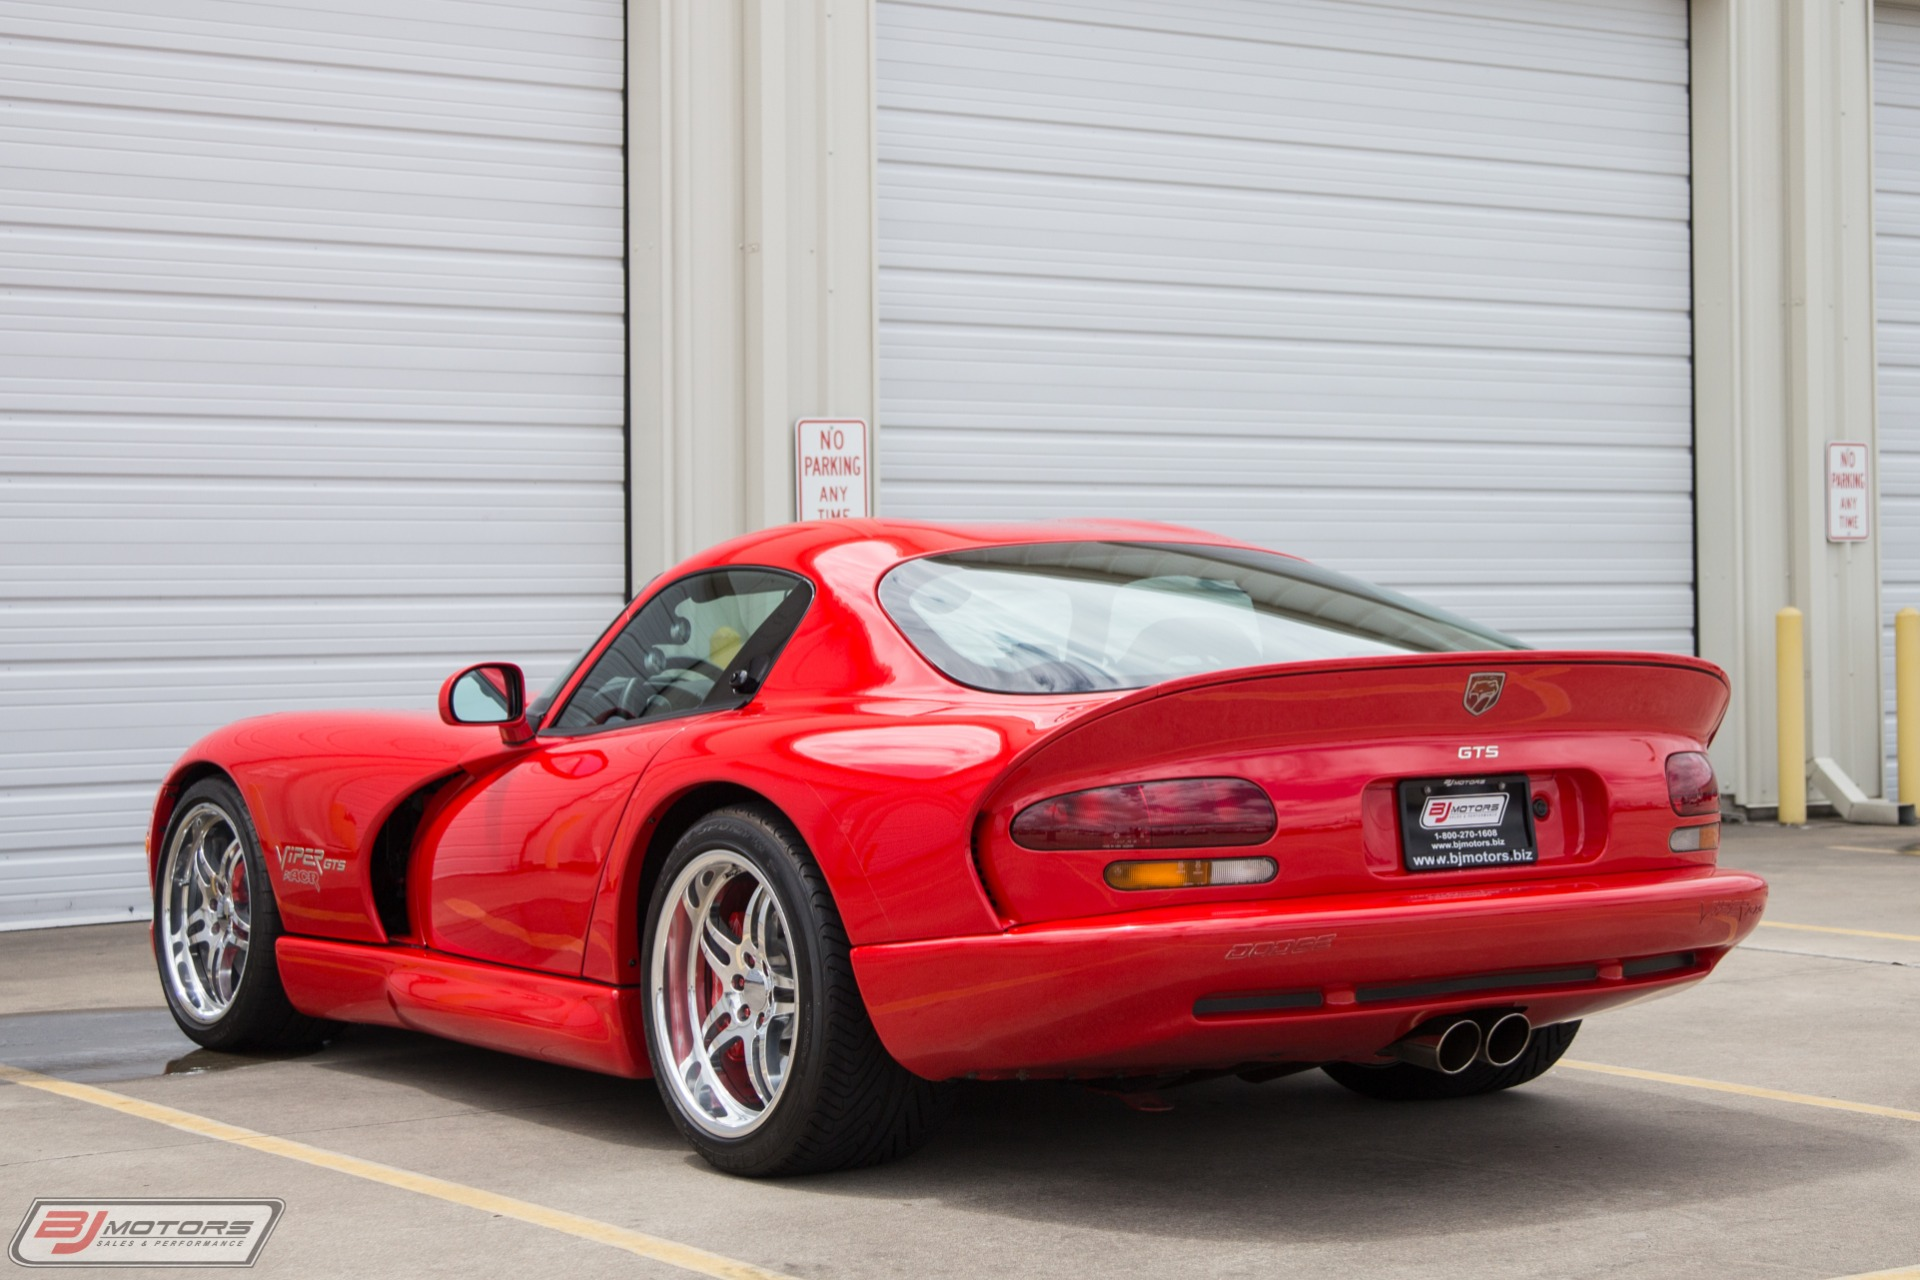 Used-1999-Dodge-Viper-ACR-Supercharged